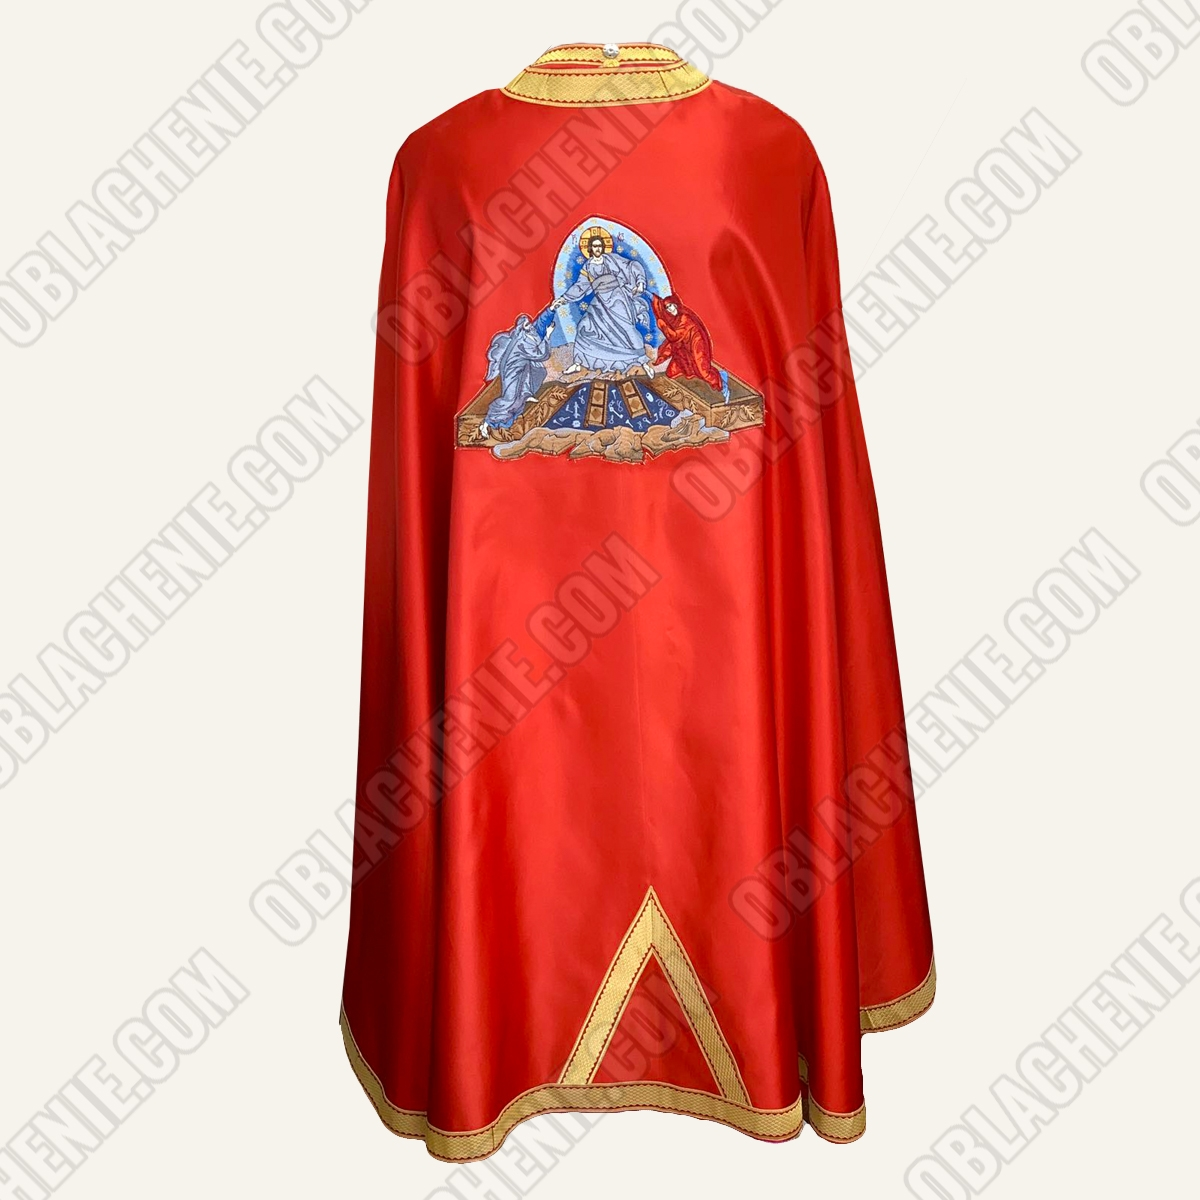 PRIEST'S VESTMENTS 11037